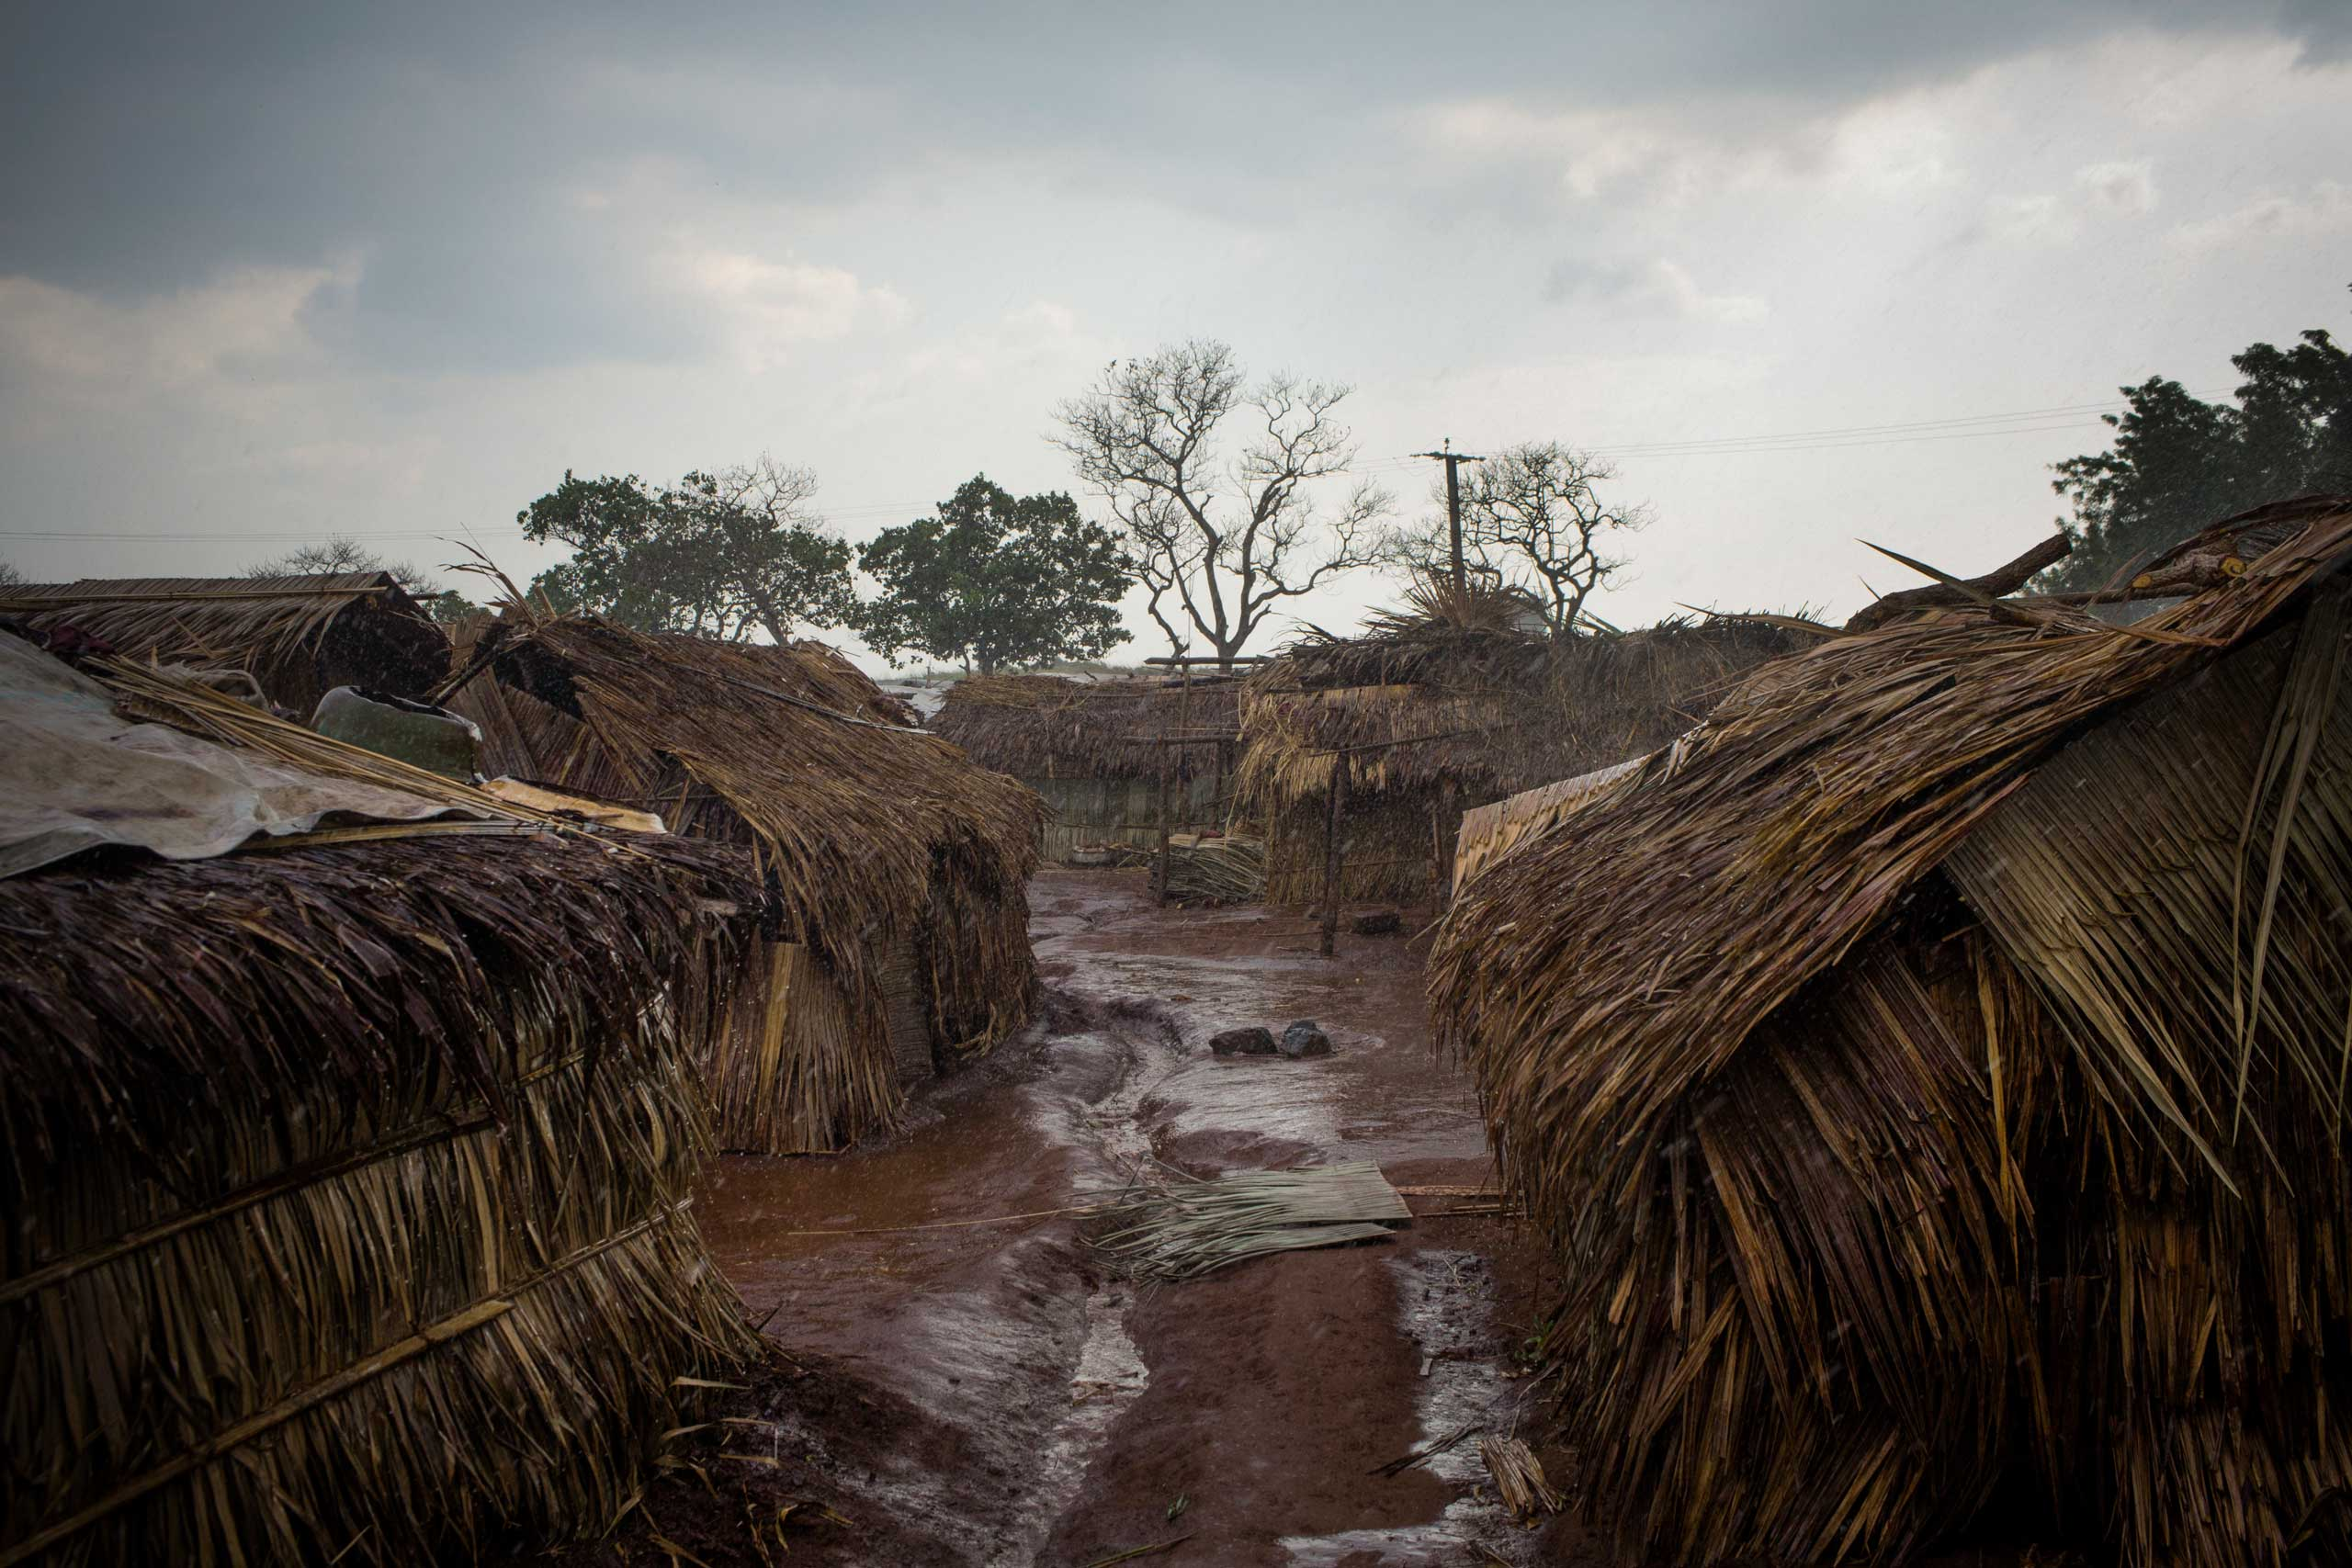 The Ngakobo camp for internally displaced people, seen after a storm. More than 16,000 Christians live in the camp after fleeing their homes during the sectarian fighting.